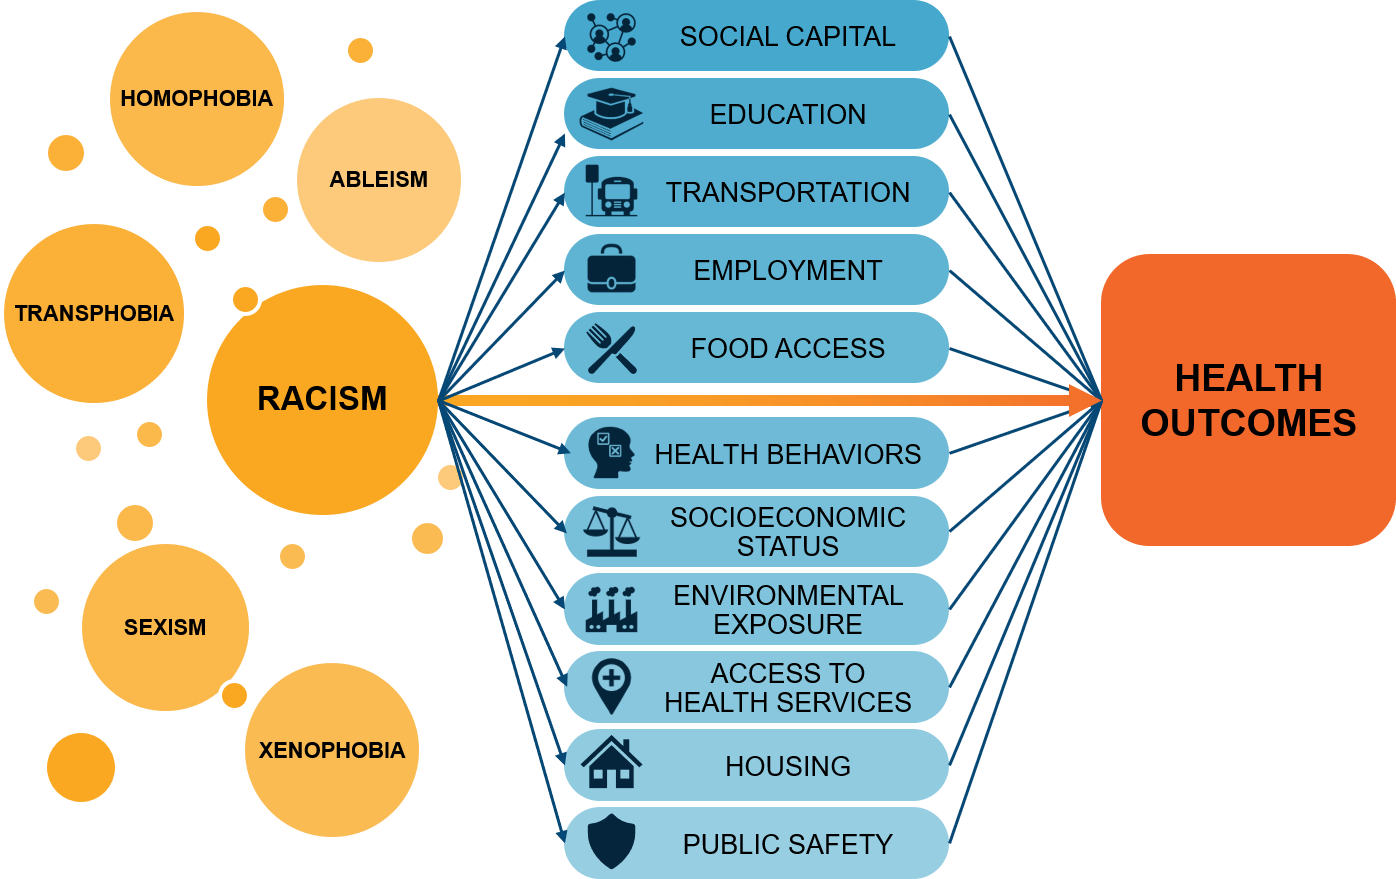 Racism impacts social capital, education, transportation, employment, food access, health behaviors, socioeconomic status, environmental exposure, access to health services, housing, and public safety. All of these impact health outcomes.